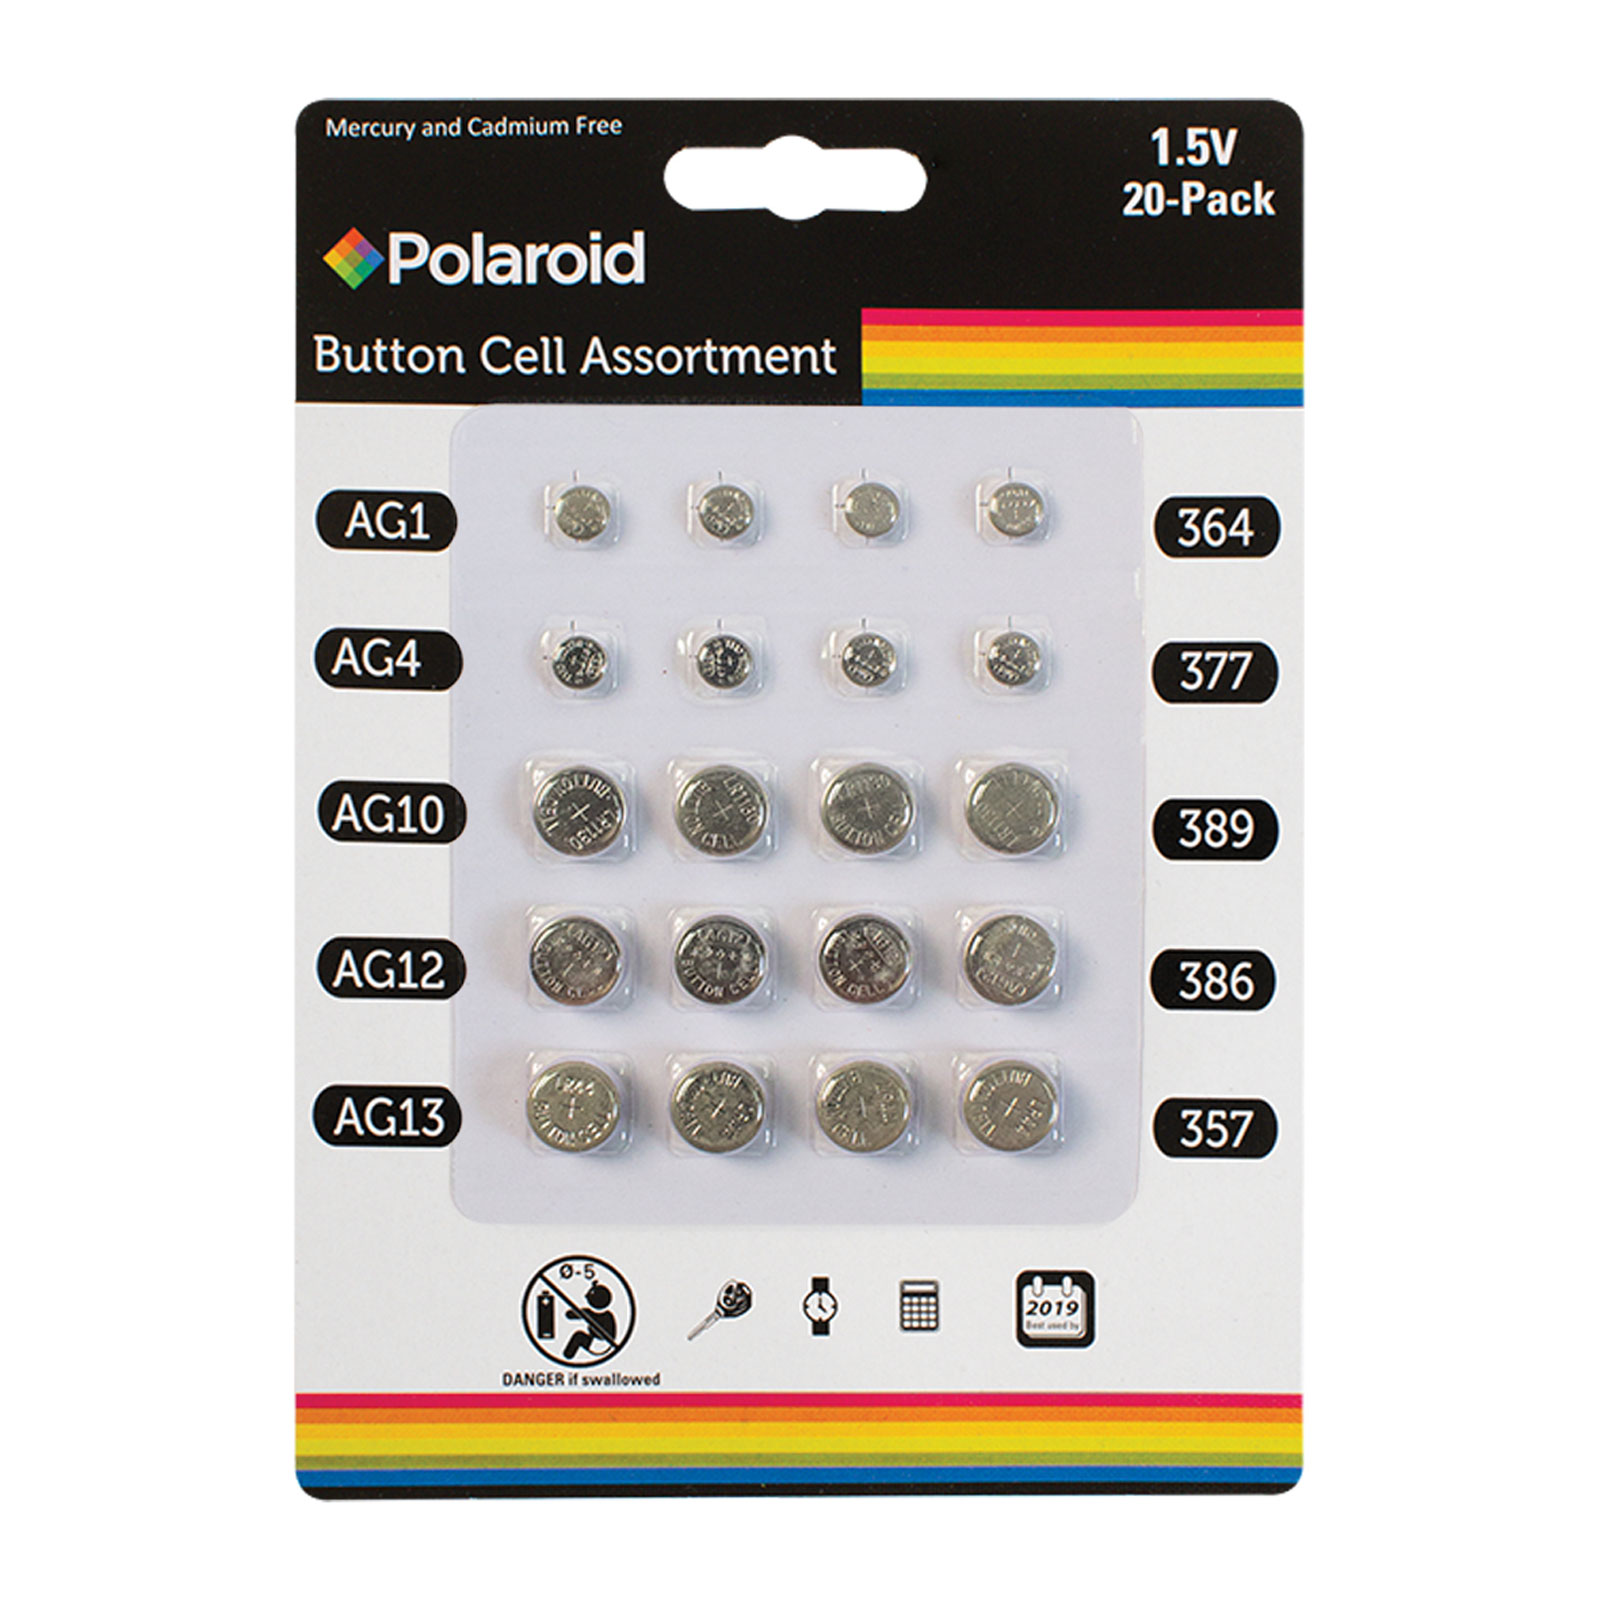 Polaroid 15V 20 Pack Button Cell Assortment Batteries